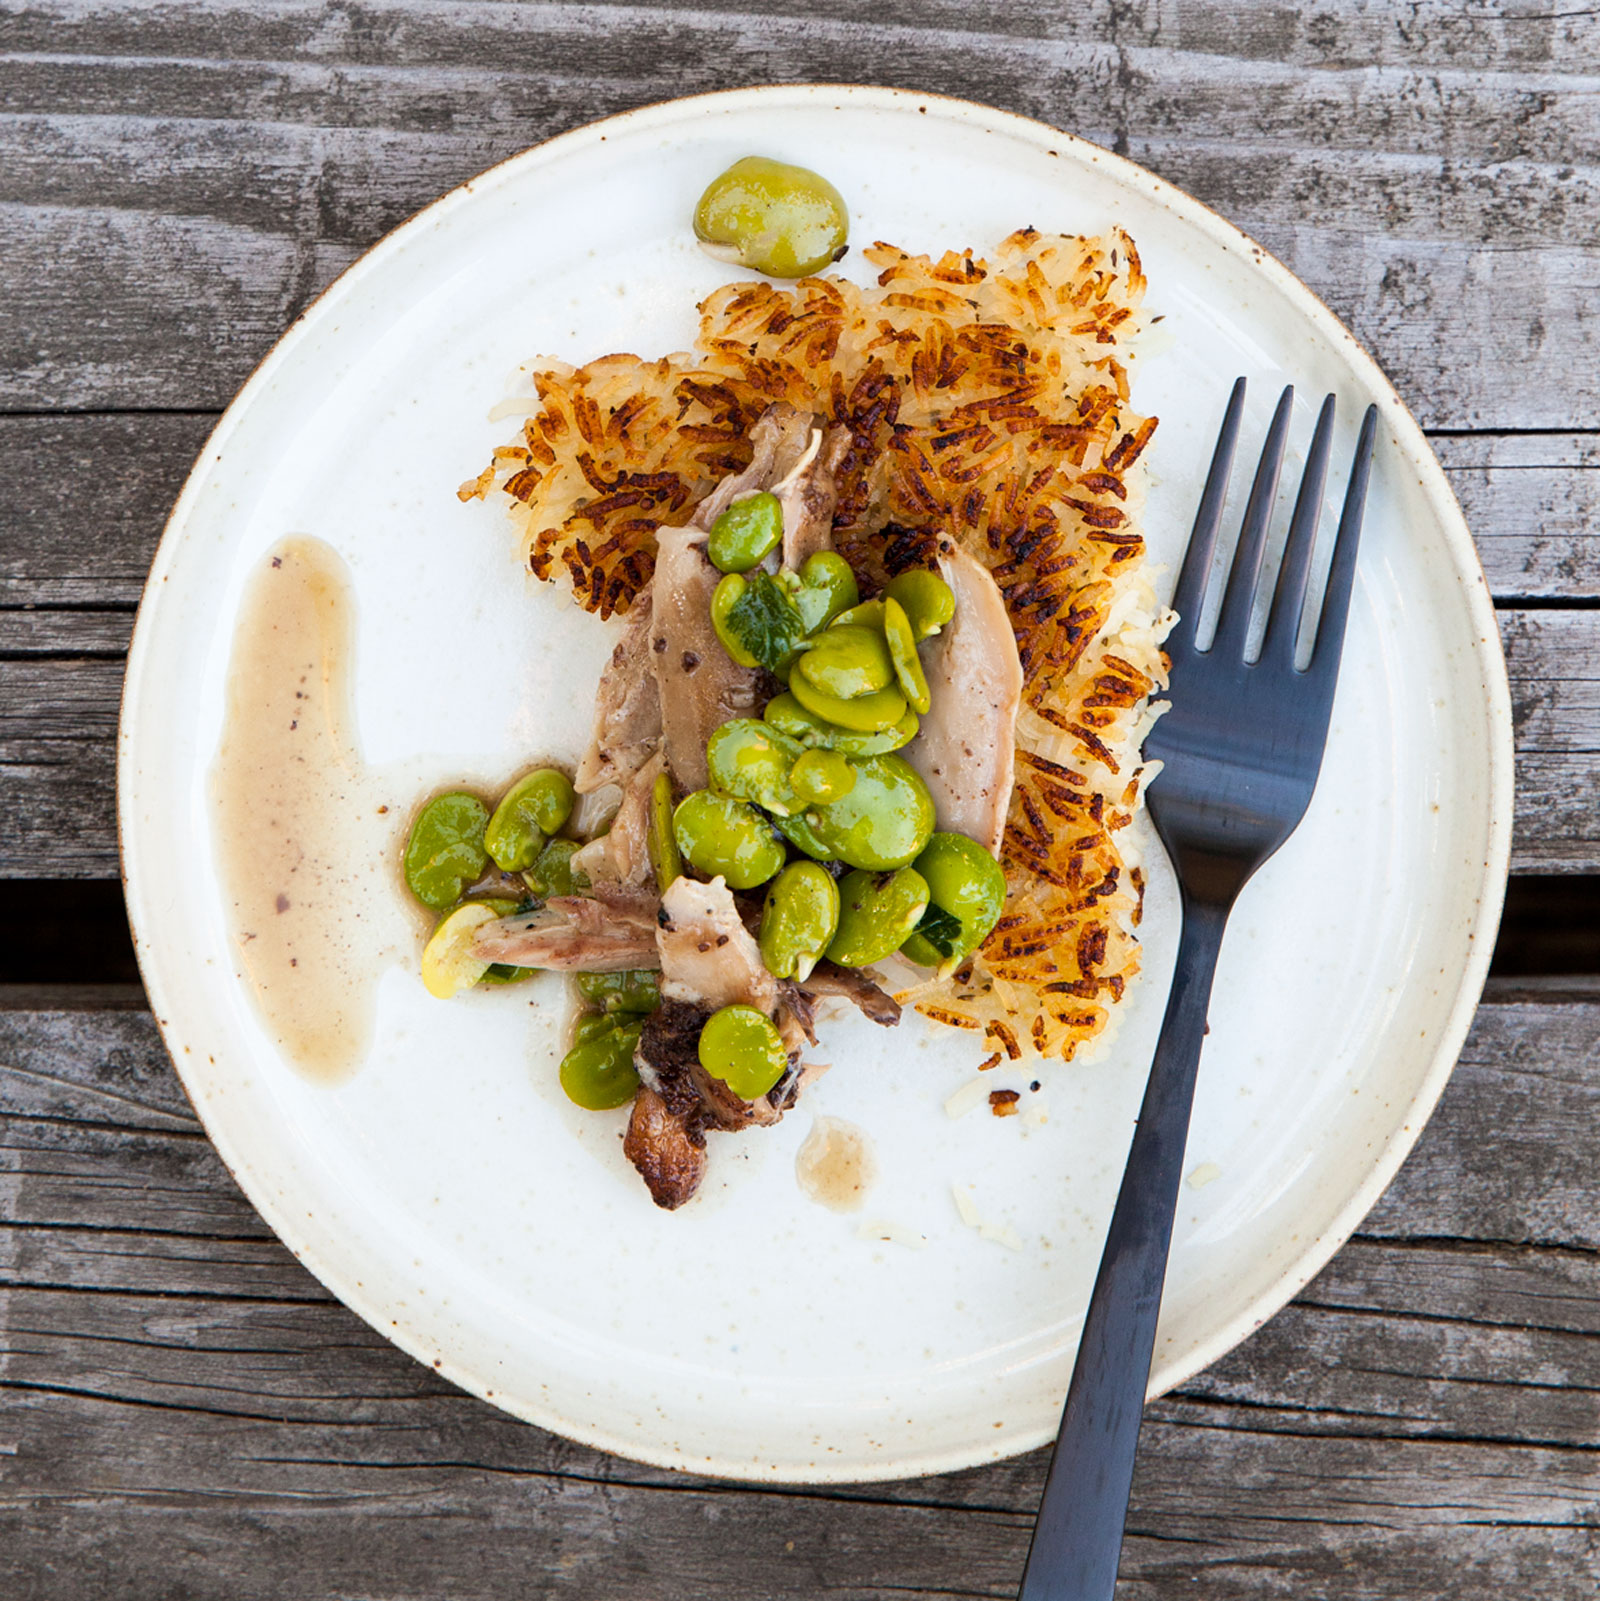 Braised Chicken with Fava Beans